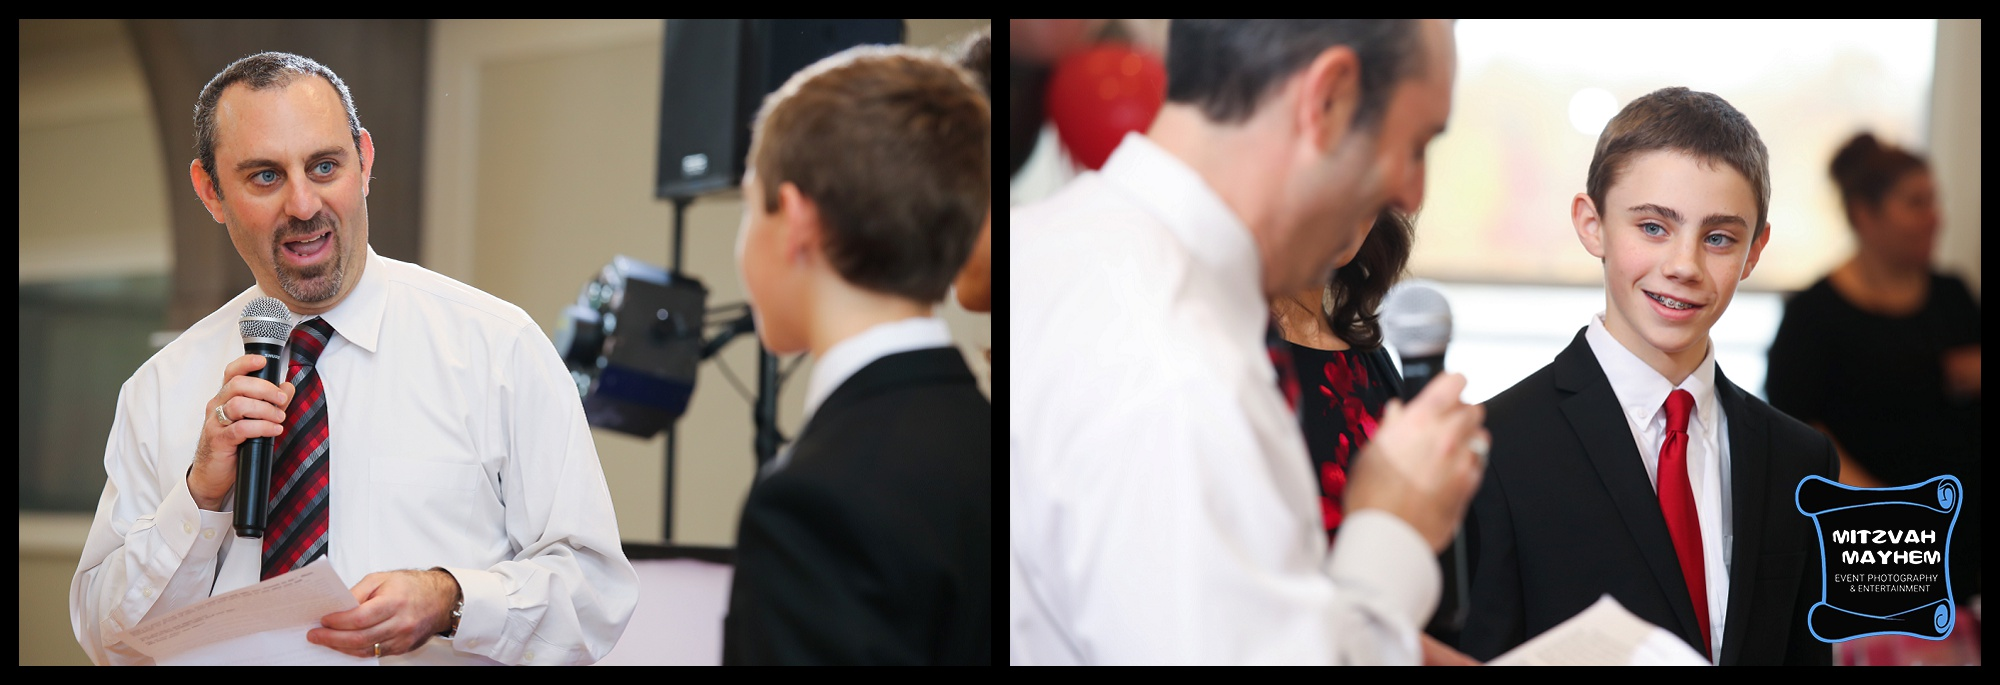 mercer-boathouse-mitzvah-nj-0457.jpg